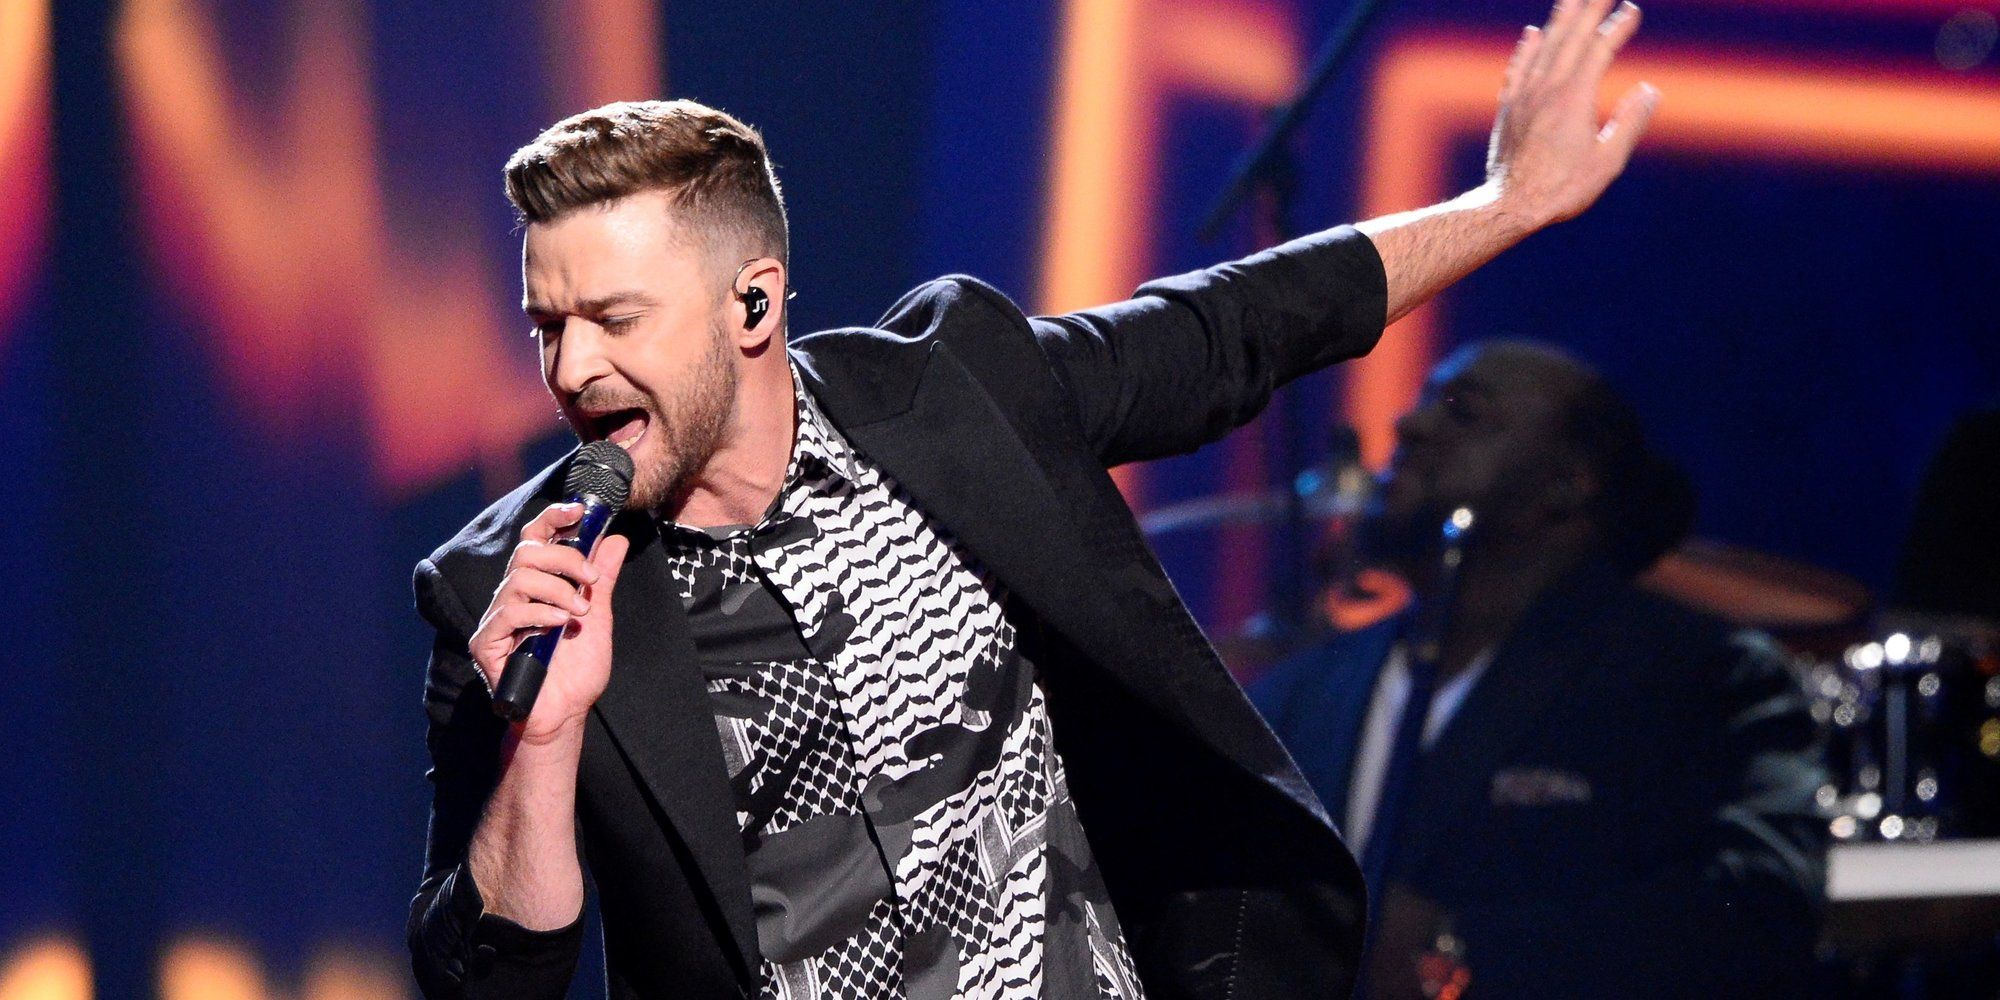 Justin Timberlake Brings 'Can't Stop The Feeling' To